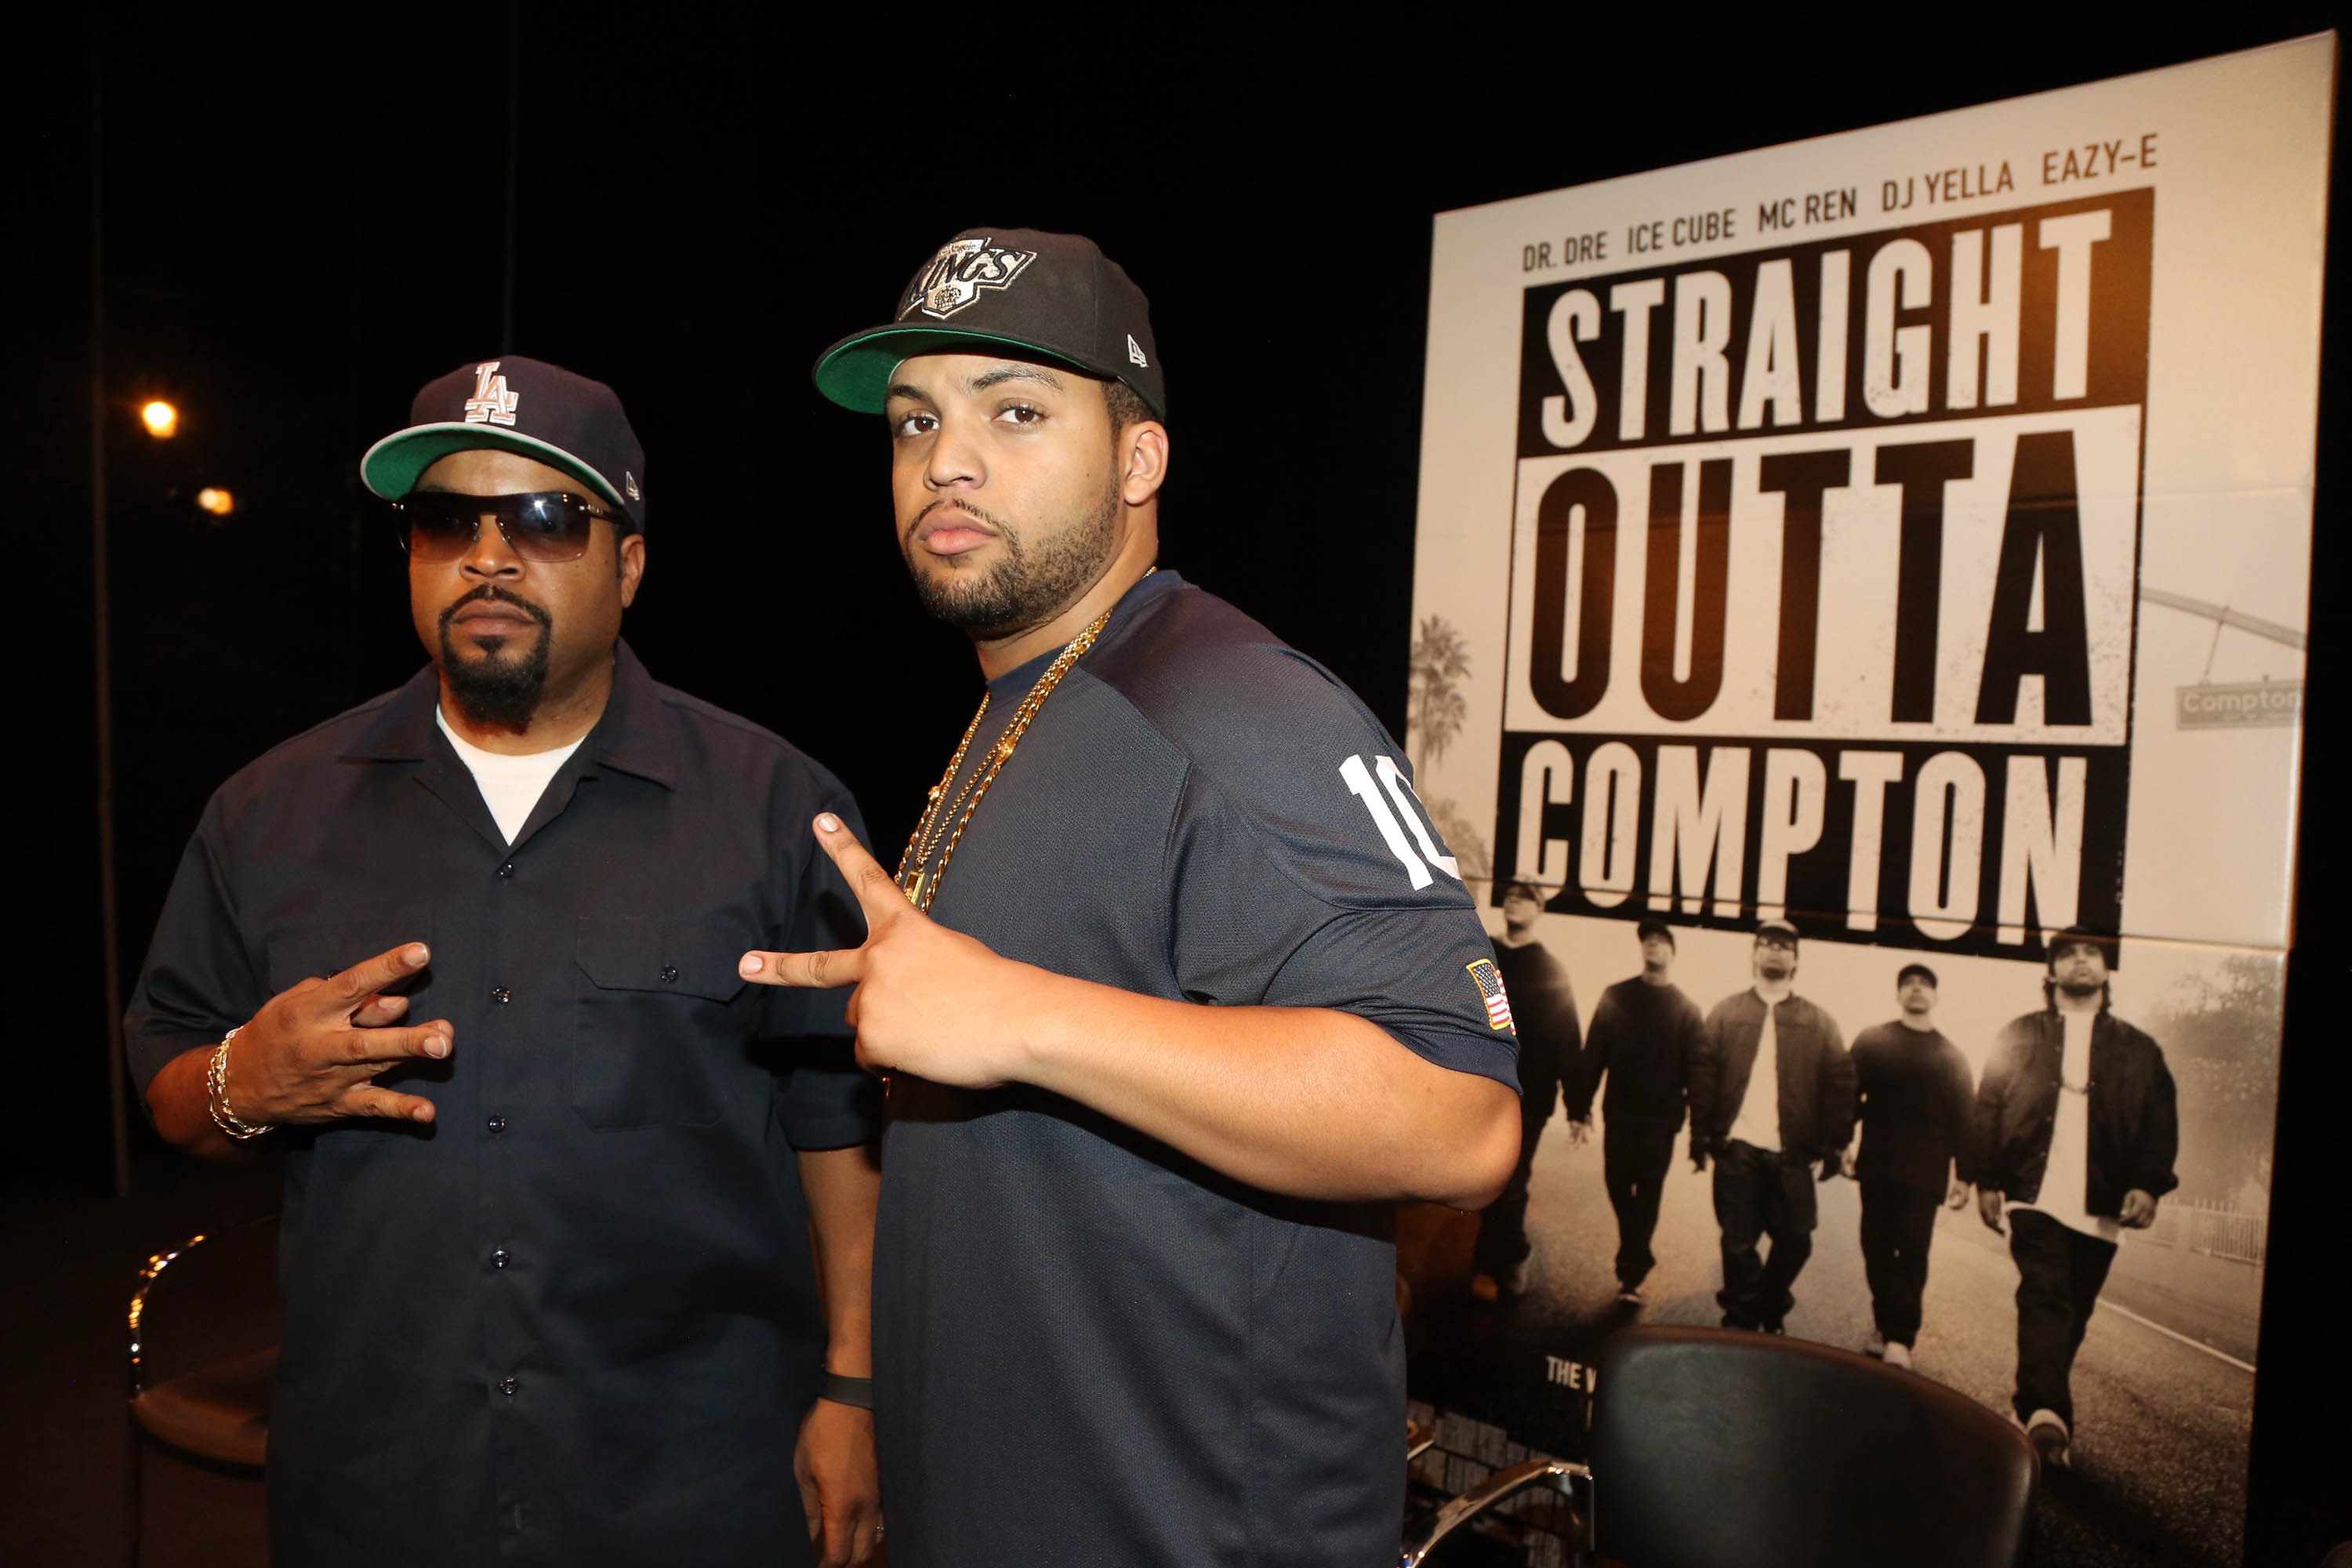 There Were Different 'Straight Outta Compton' Trailers By Race | Fortune.com